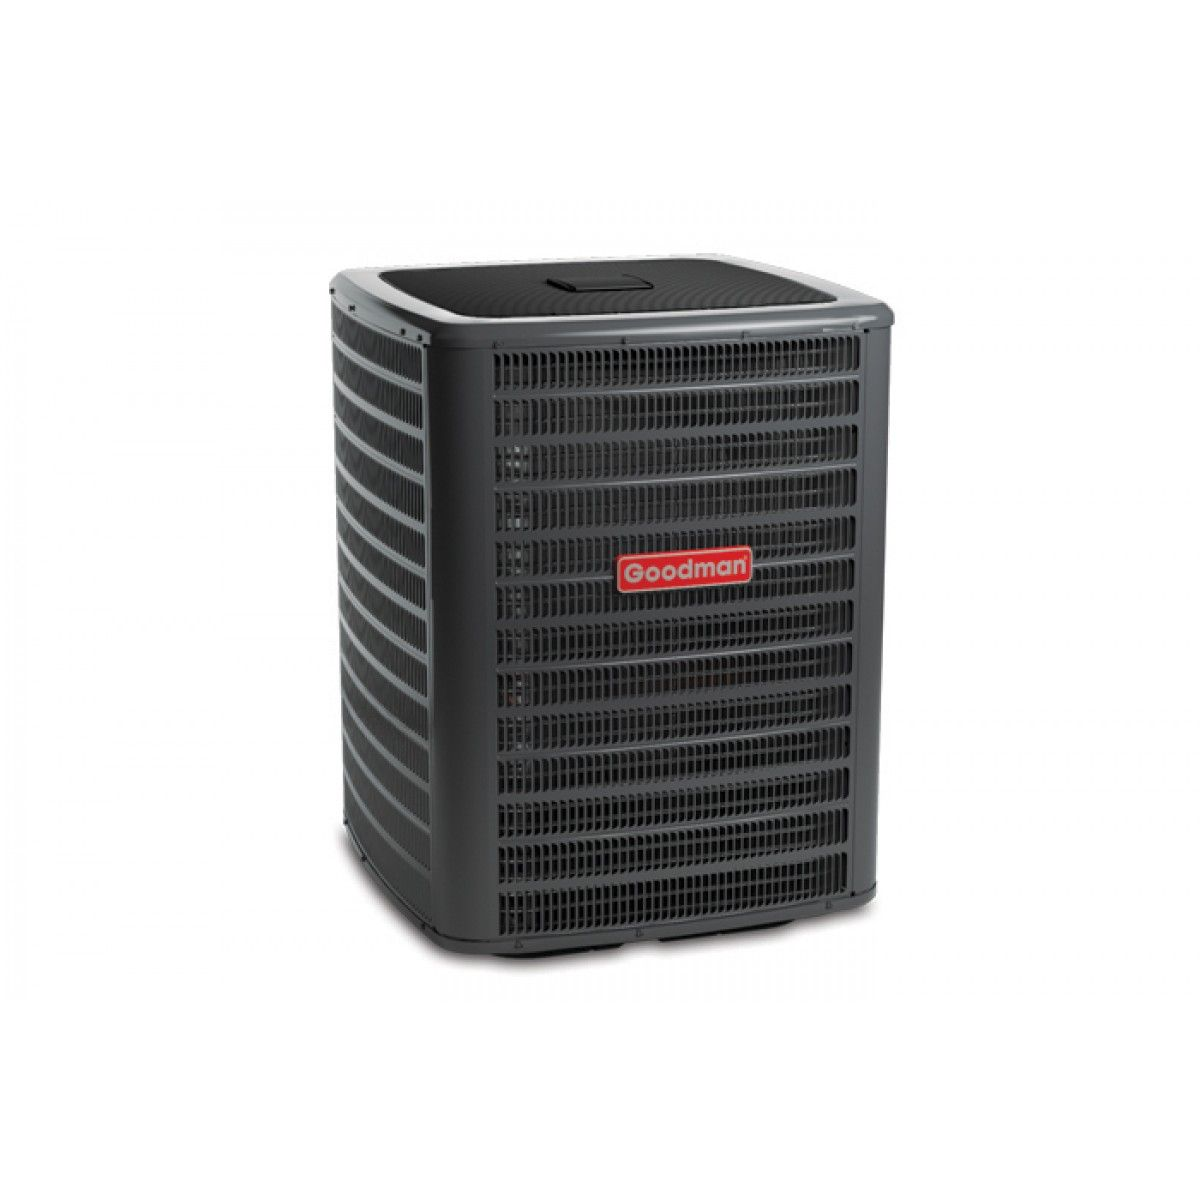 Goodman 2 0 Ton 16 Seer R 410a Air Conditioning System